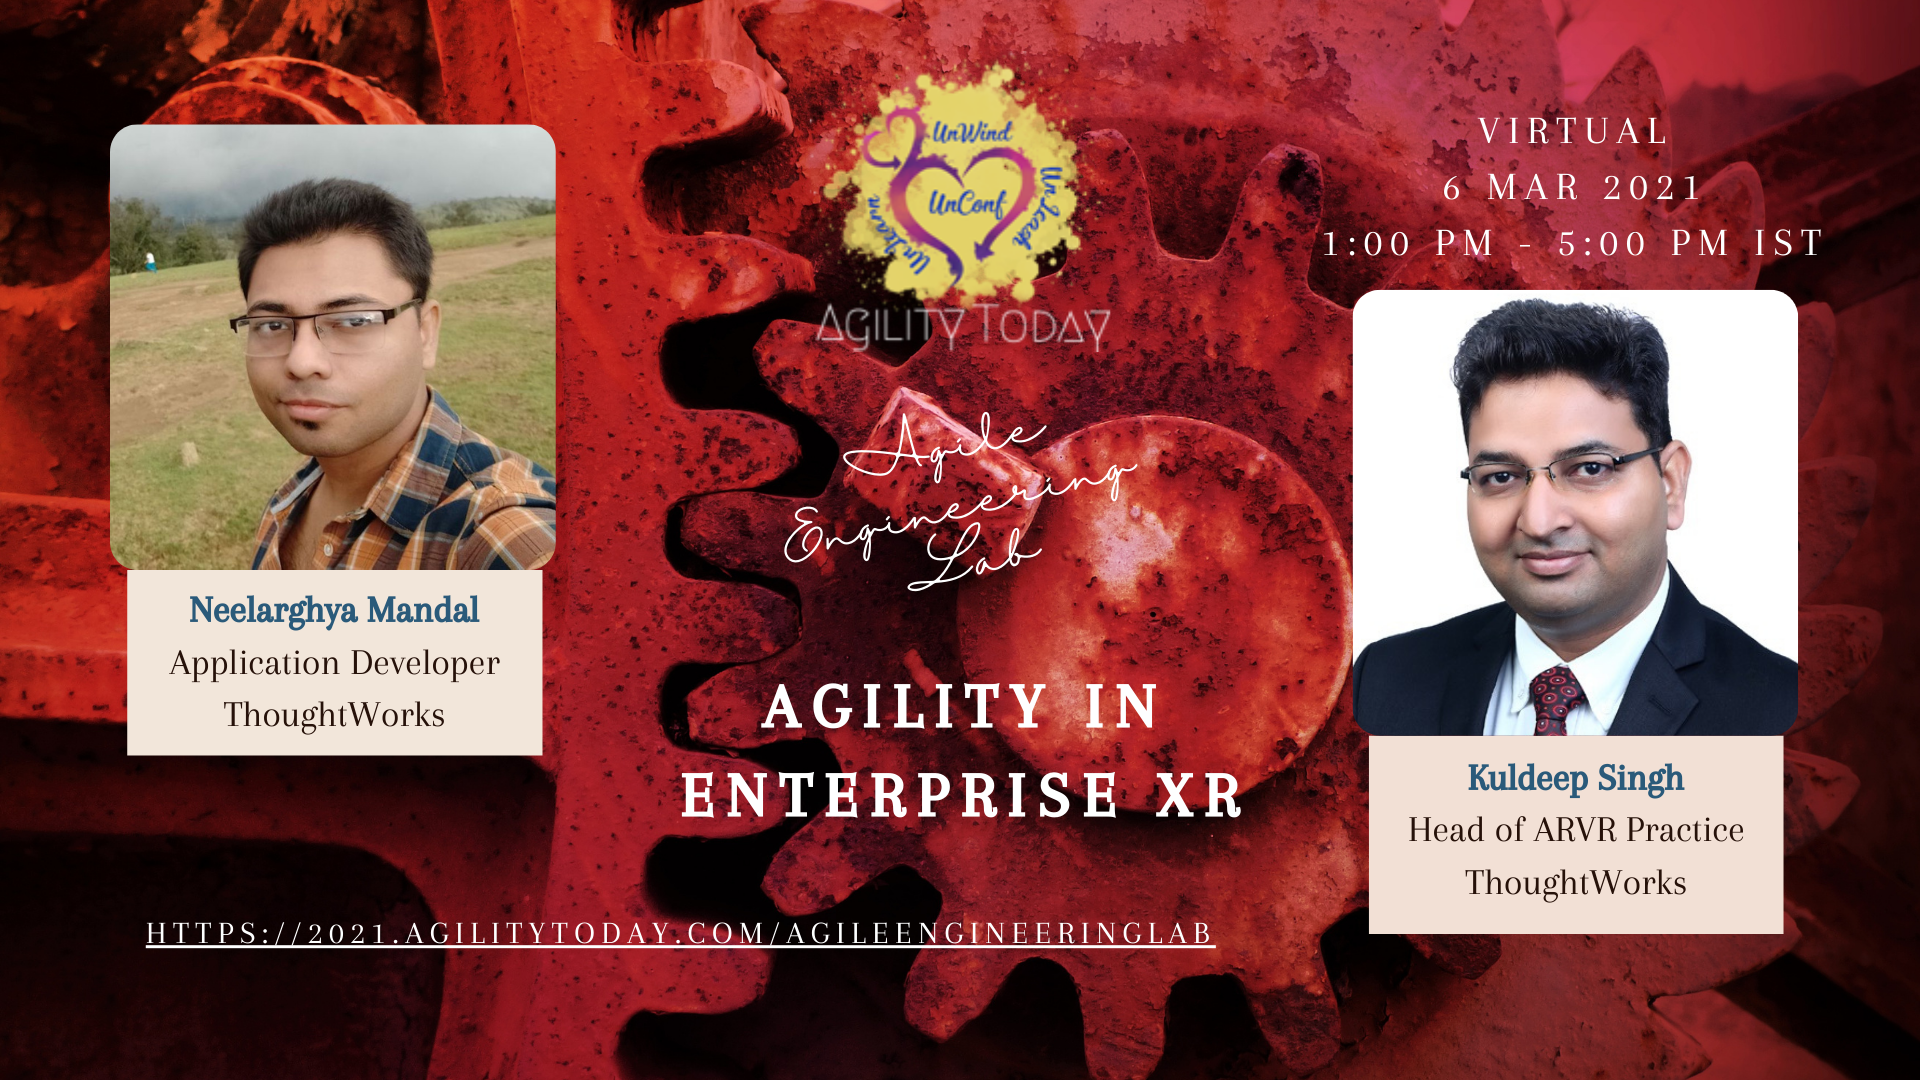 image from Speaker - AT2020 - Agility in Enterprise XR